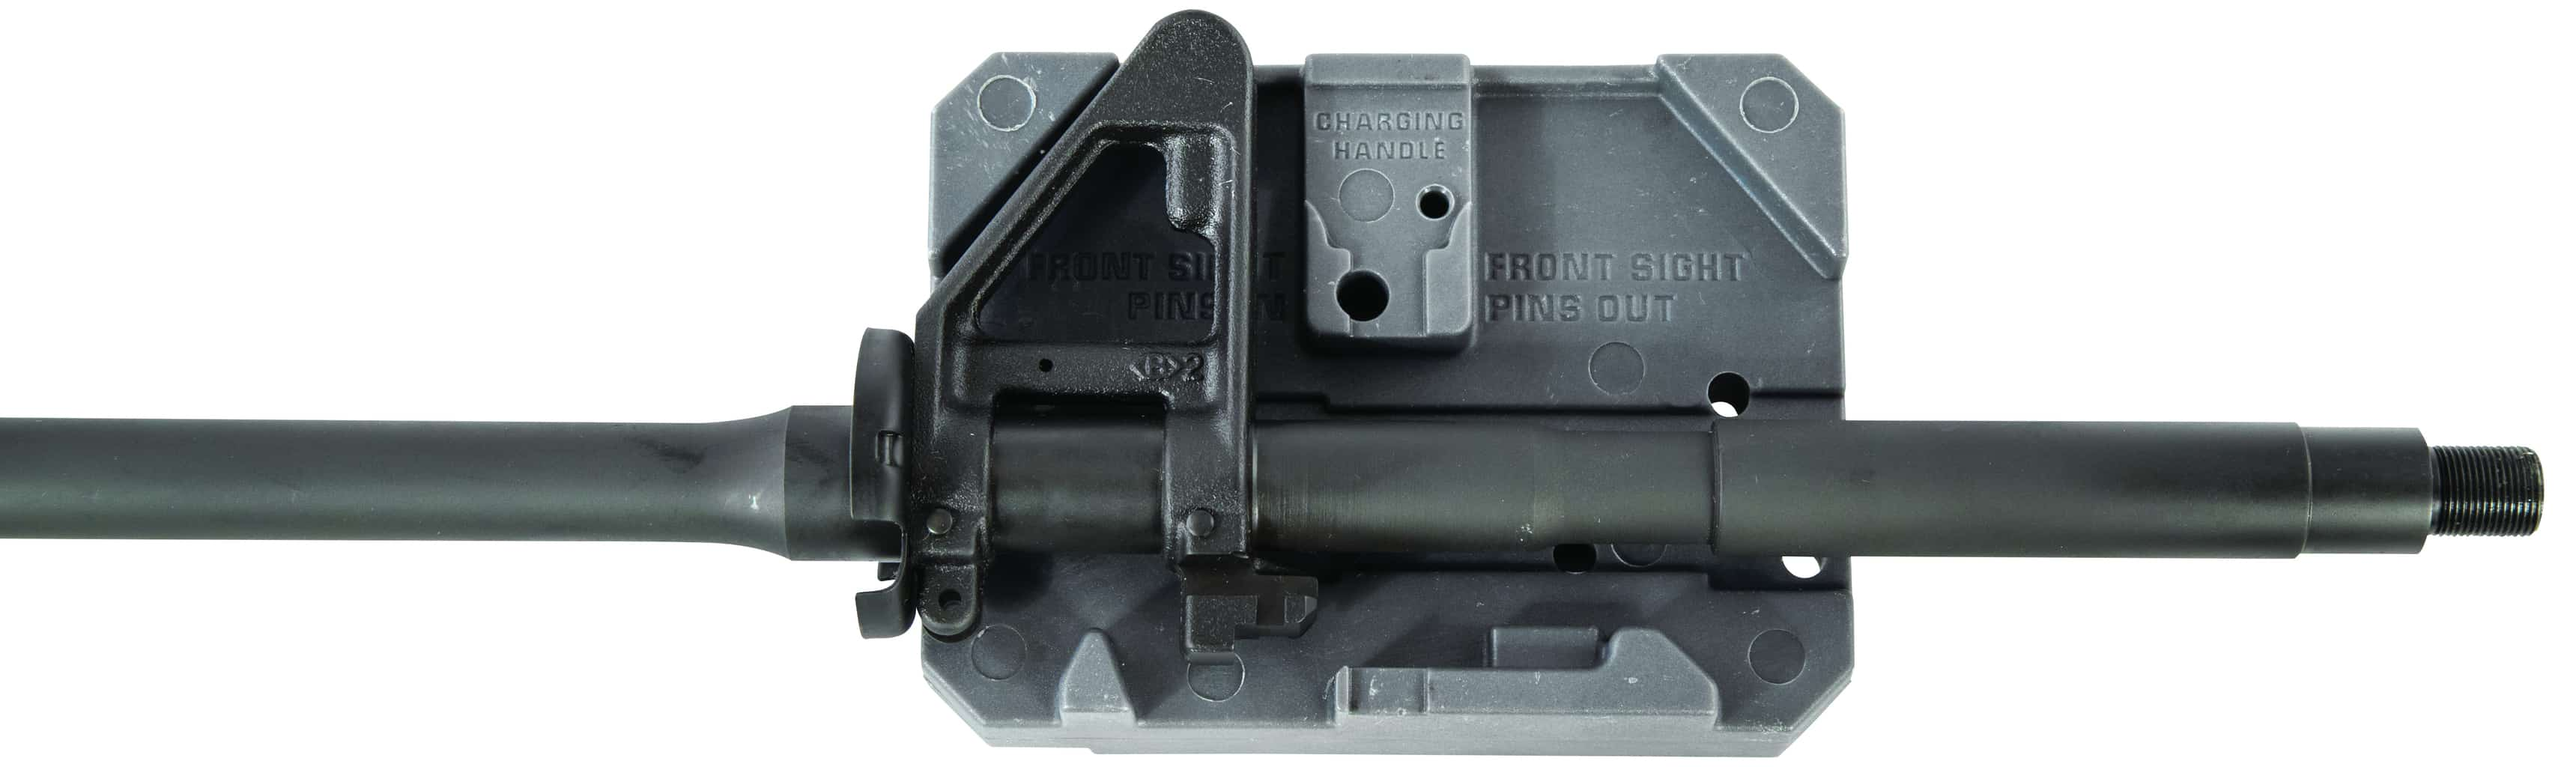 AR Armorer's Bench Block - 156945 Front Sight